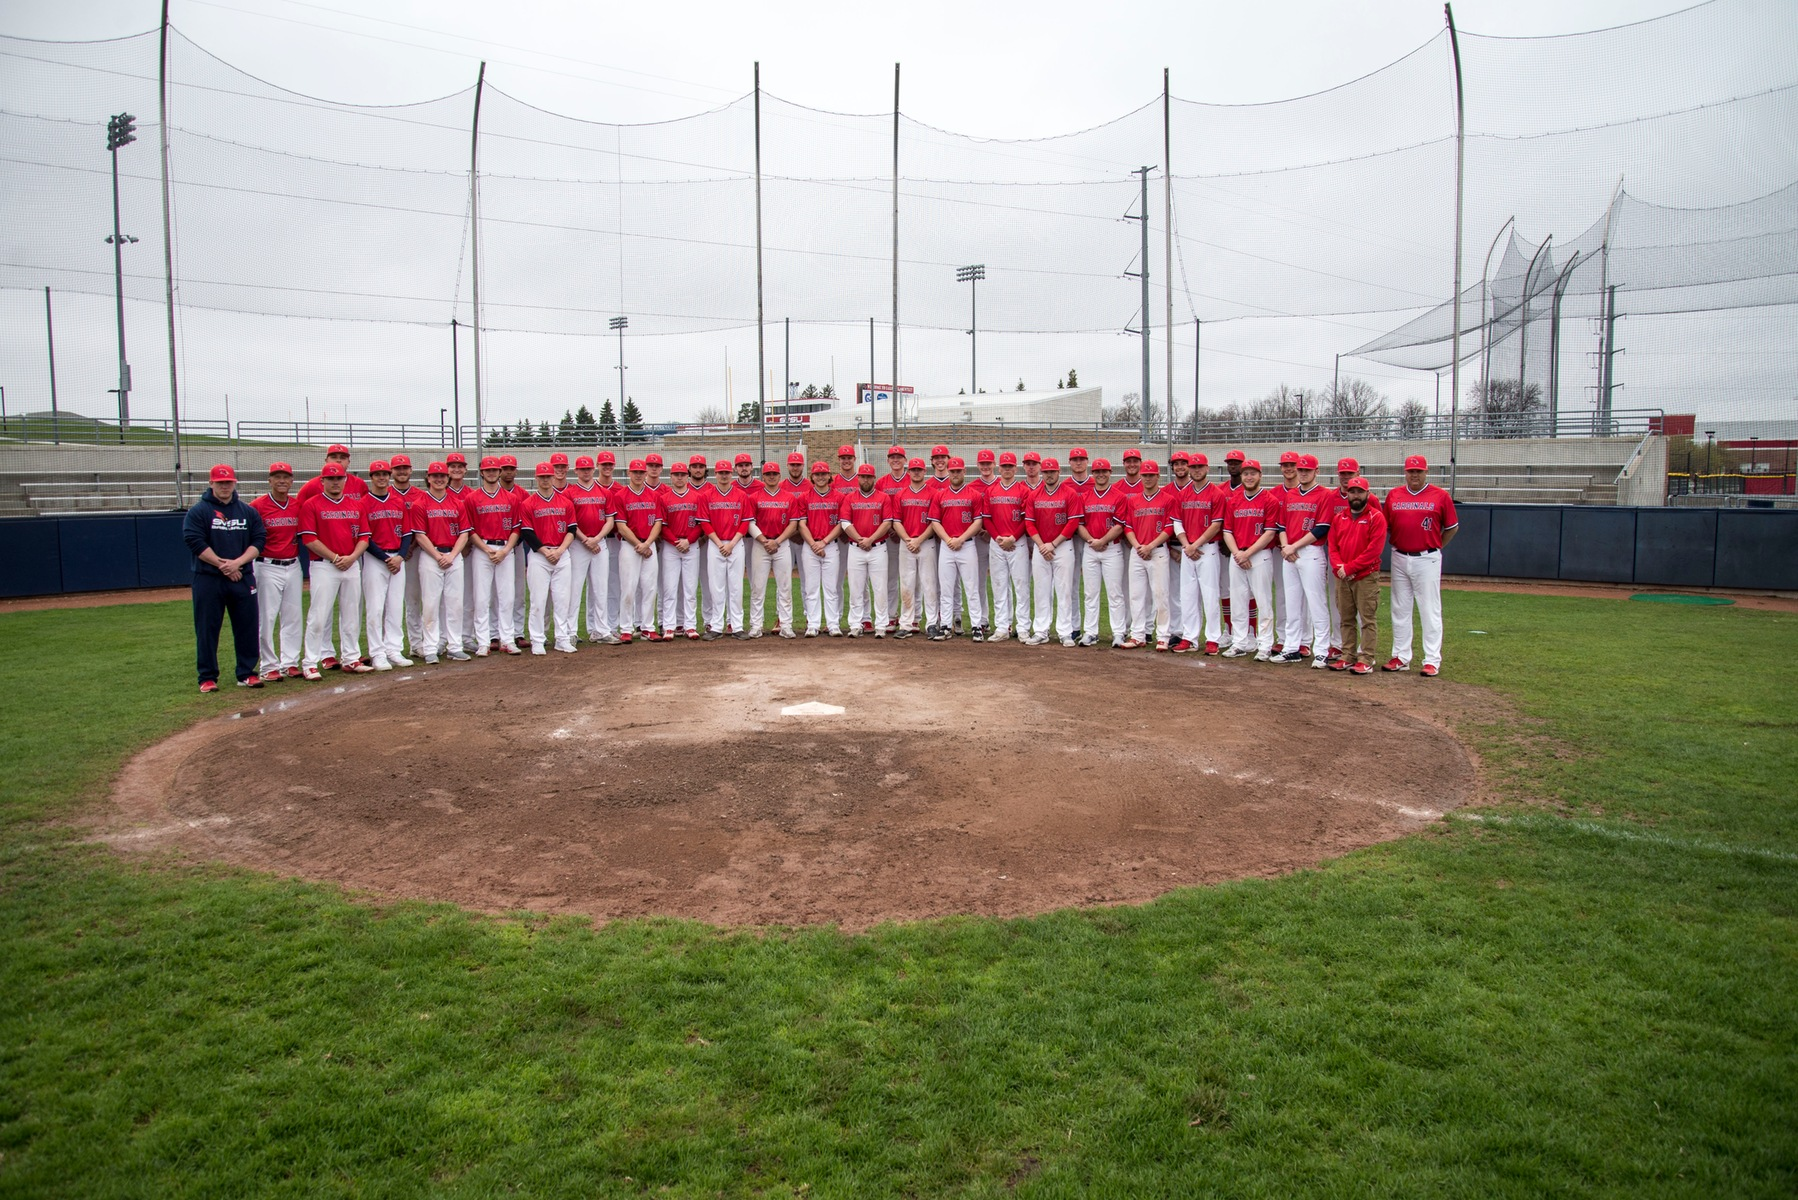 SVSU Baseball to hold 2019 Banquet on Monday, May 20th